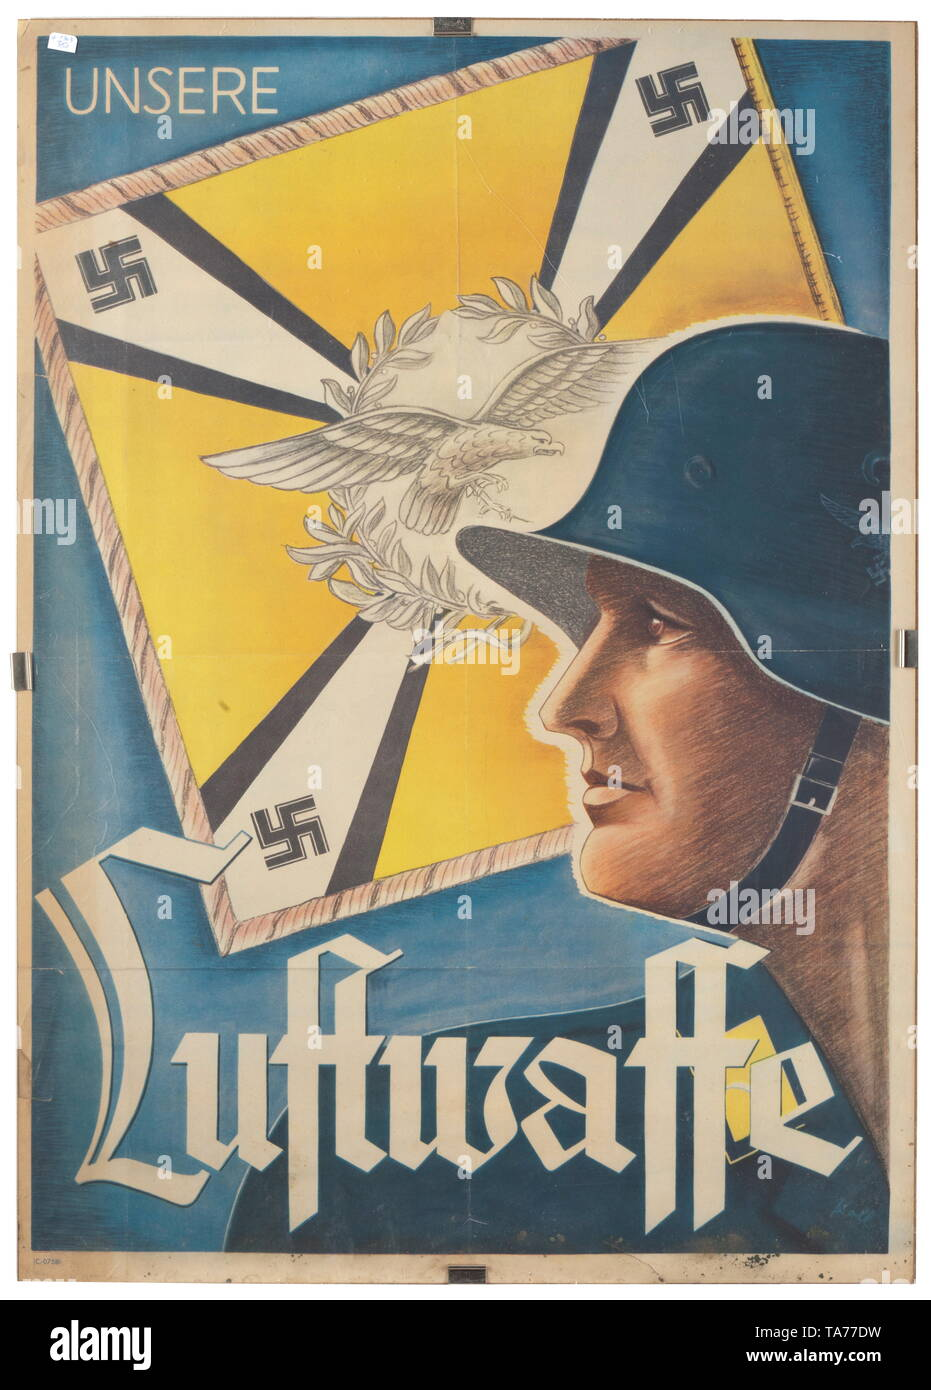 A poster advertising 'Unsere Luftwaffe' (tr. 'our airforce') signed 'Koll' historic, historical, Air Force, branch of service, branches of service, armed service, armed services, military, militaria, air forces, object, objects, stills, clipping, clippings, cut out, cut-out, cut-outs, 20th century, Editorial-Use-Only - Stock Image